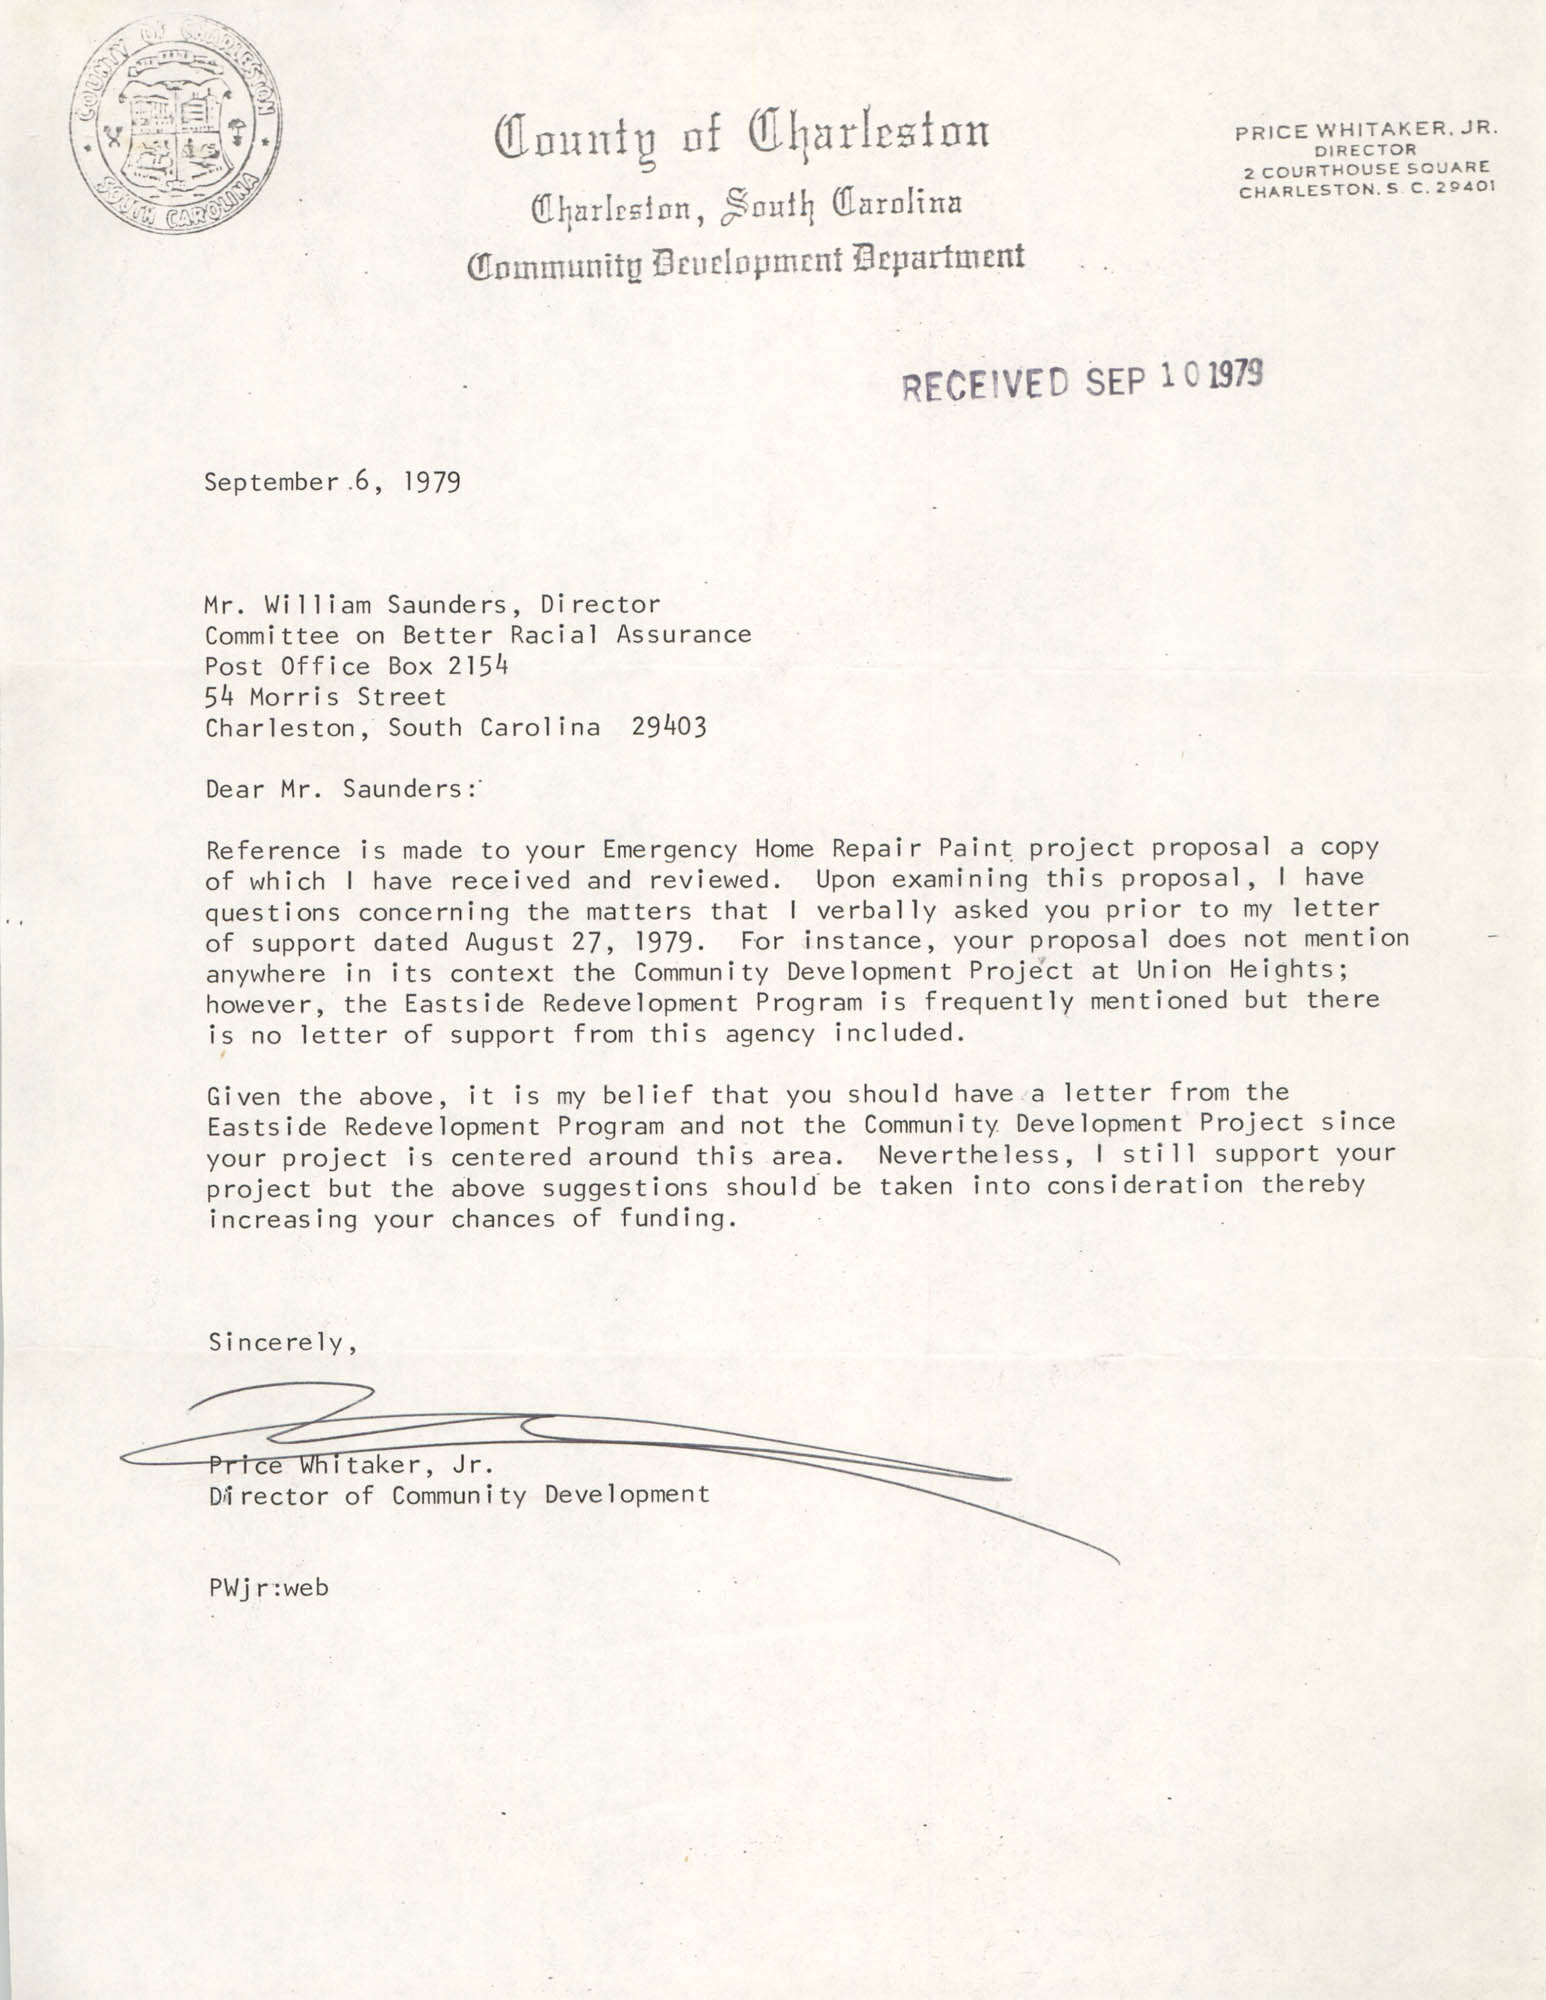 Letter from Price Whitaker, Jr. to William Saunders, September 6, 1979